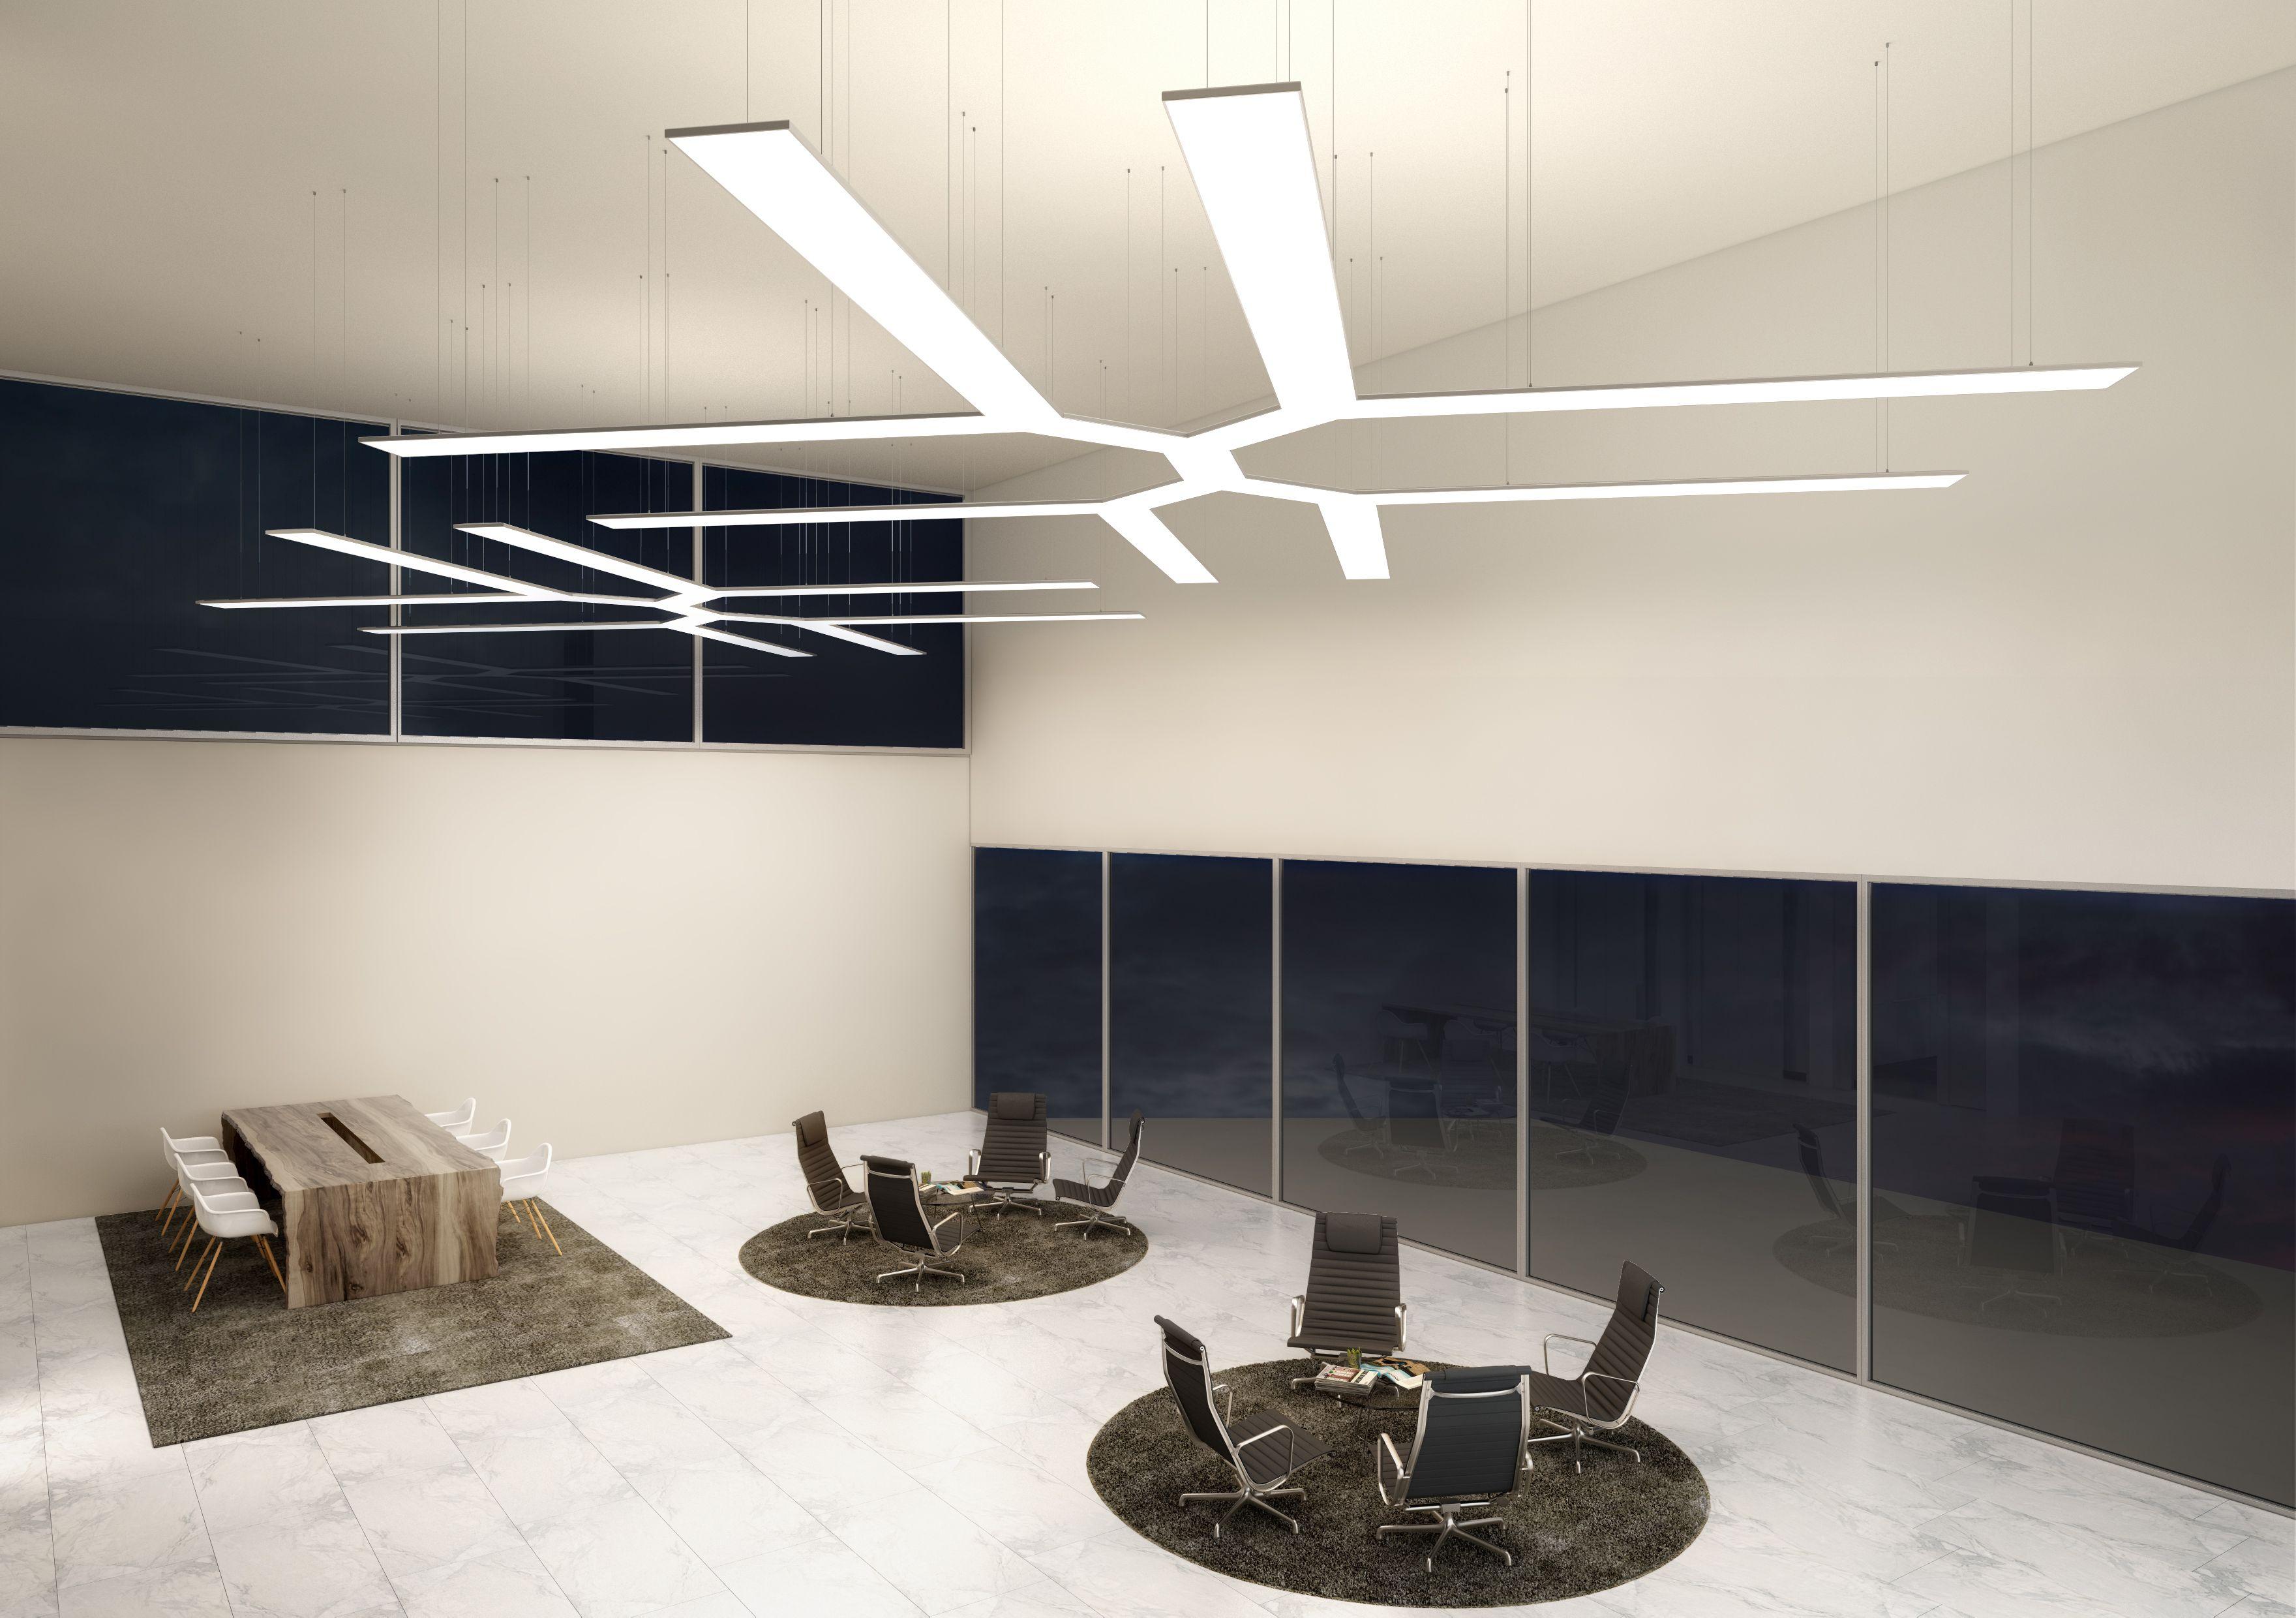 CompoSe | Ceilings, Walls and Lights